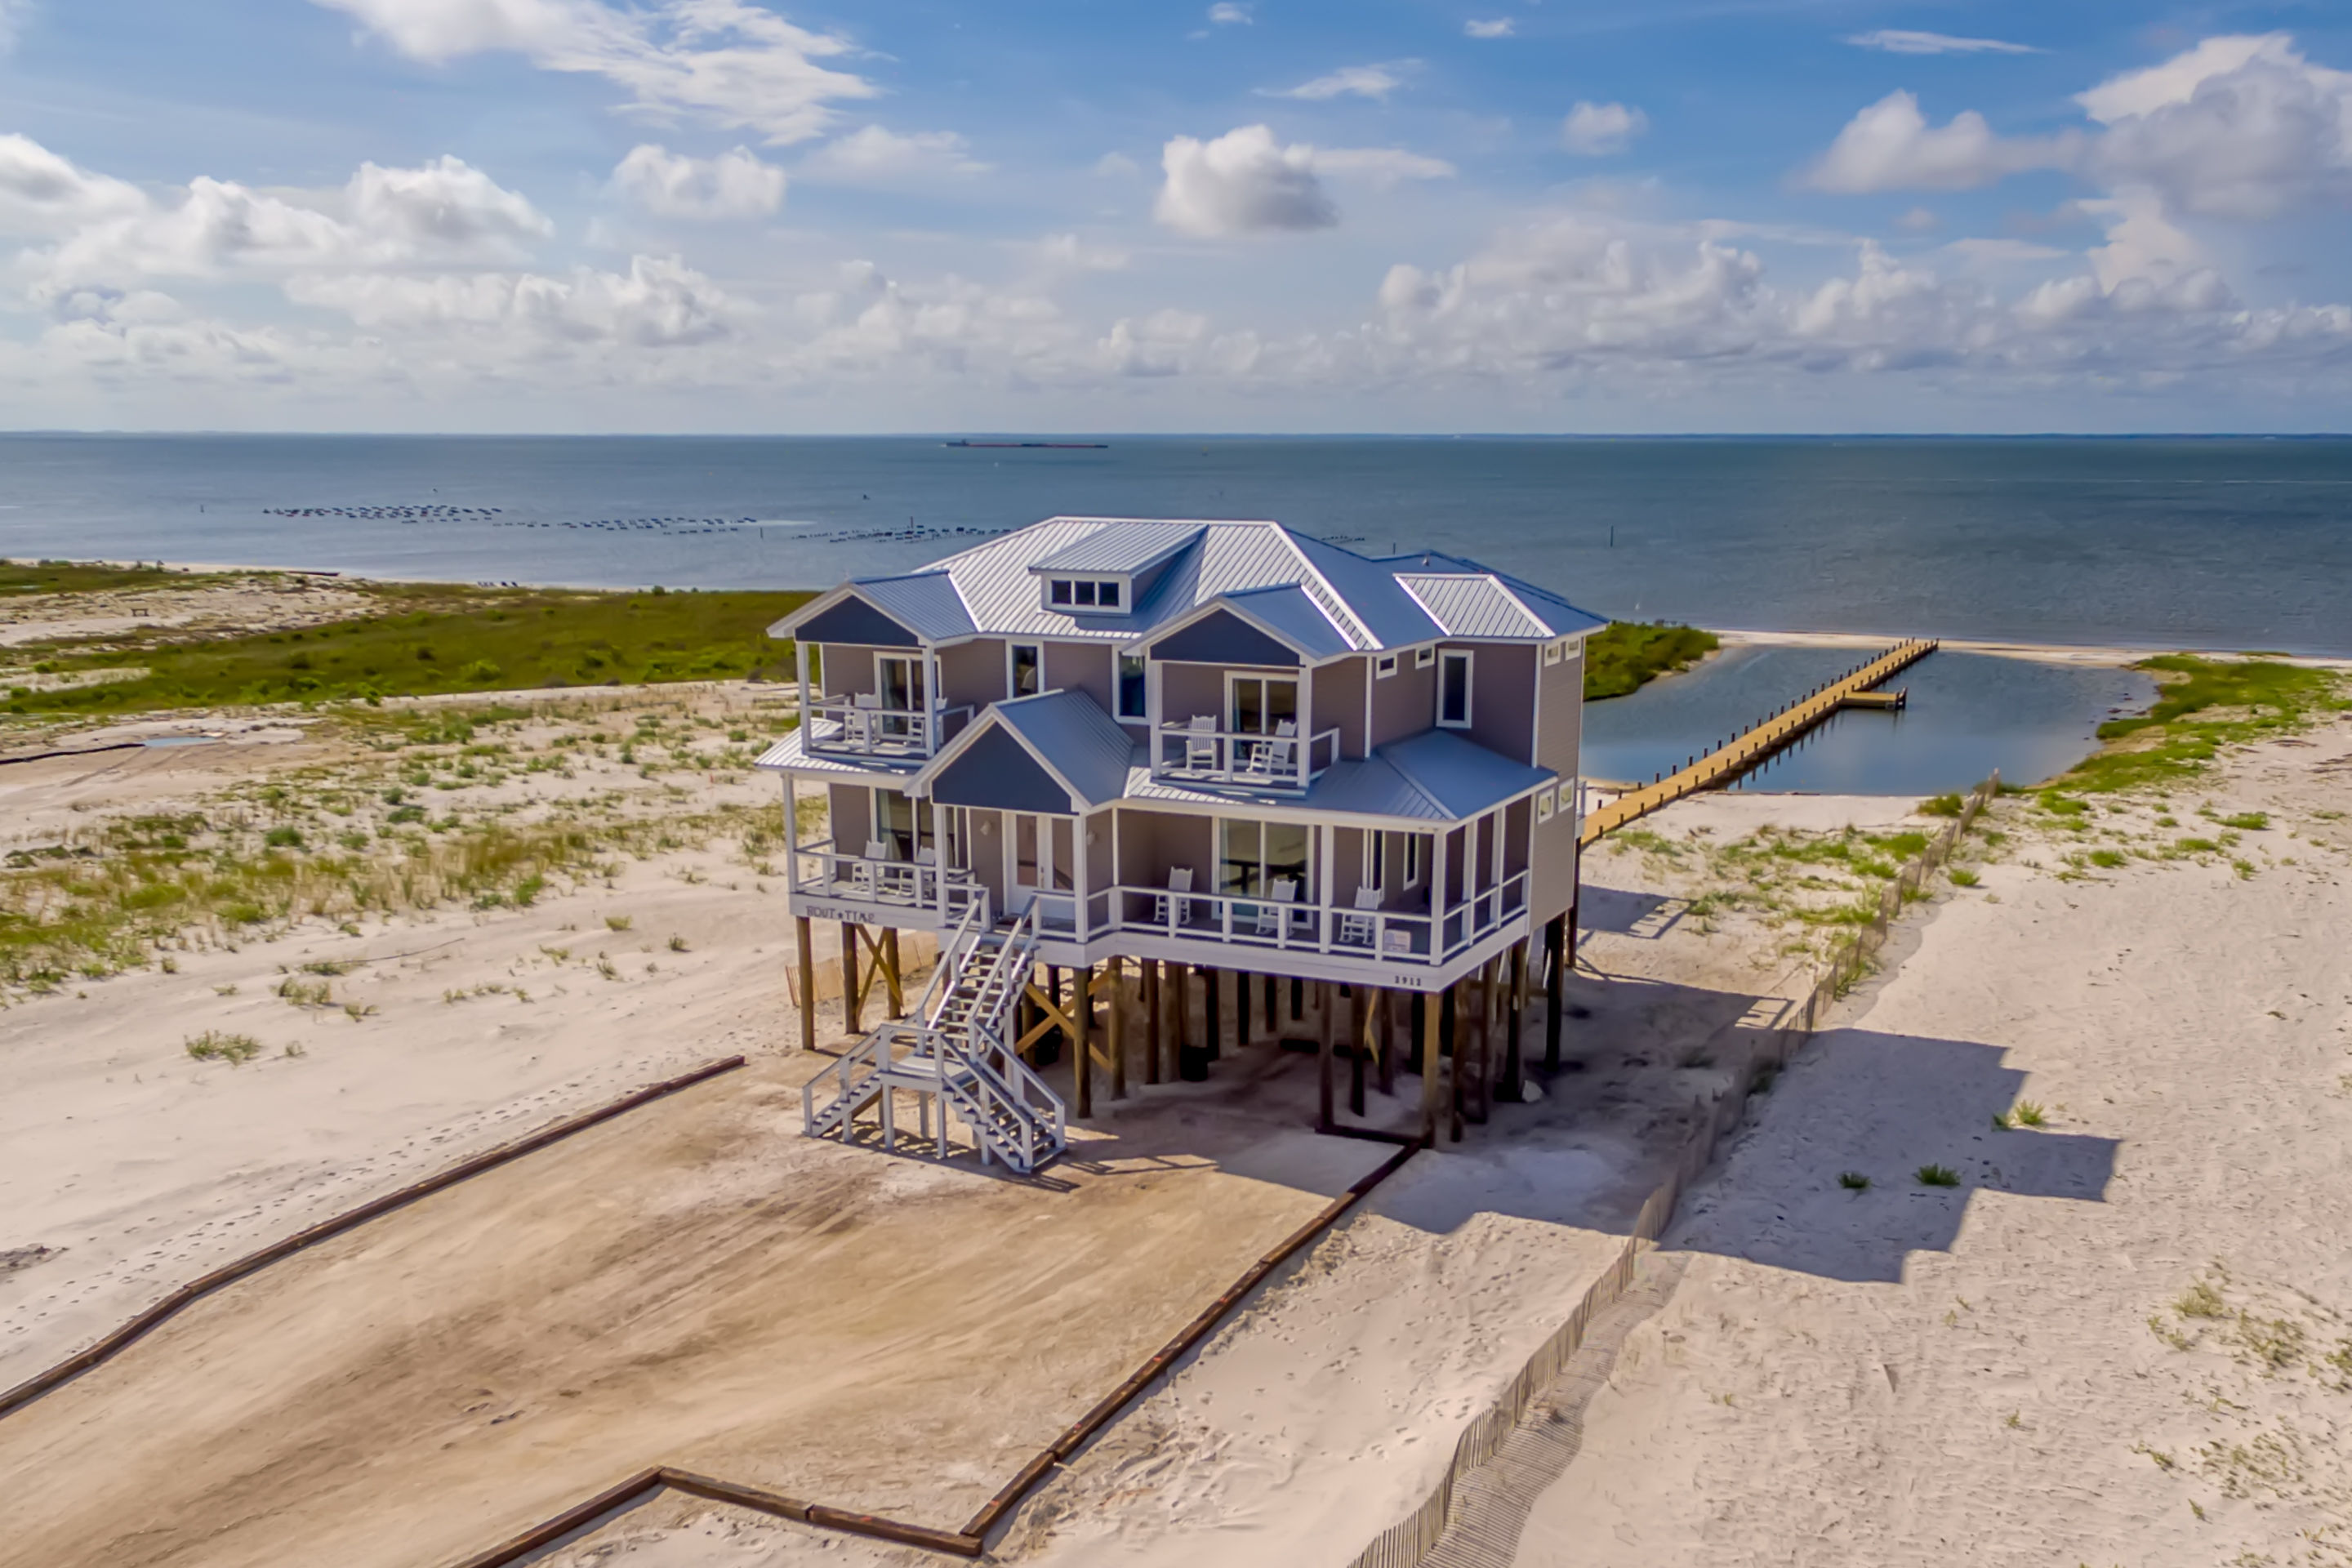 Boardwalk Realty Dauphin Island S Premier Source For Vacation Rentals And Sales